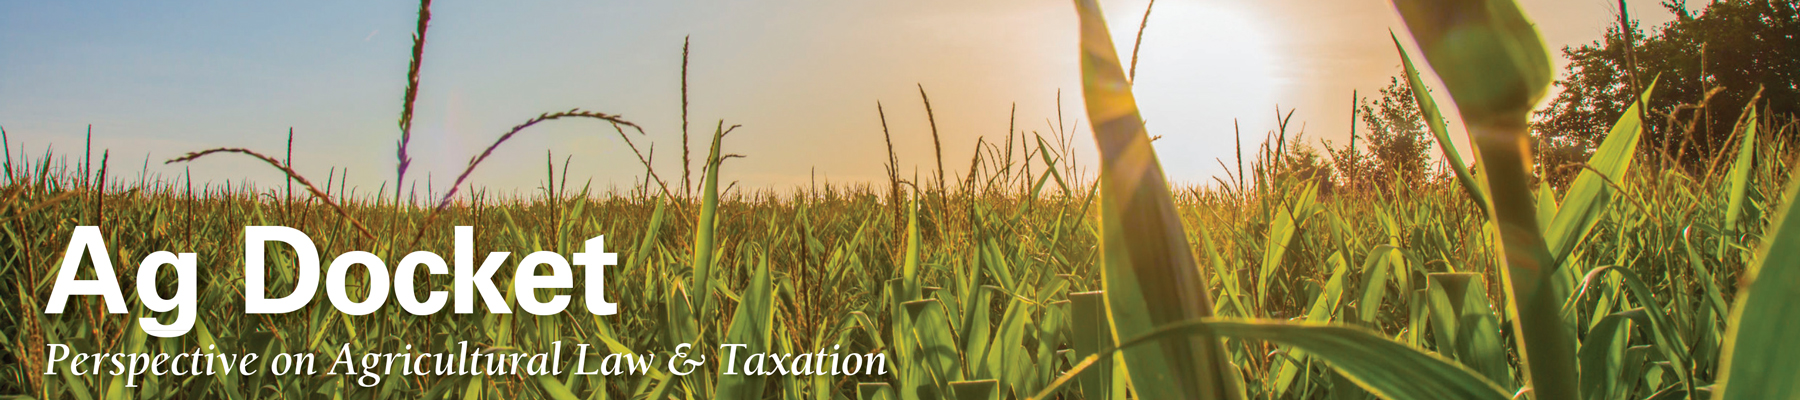 Sba Has Issued Rules For First Draw Second Draw And Increased Ppp Loans Center For Agricultural Law And Taxation